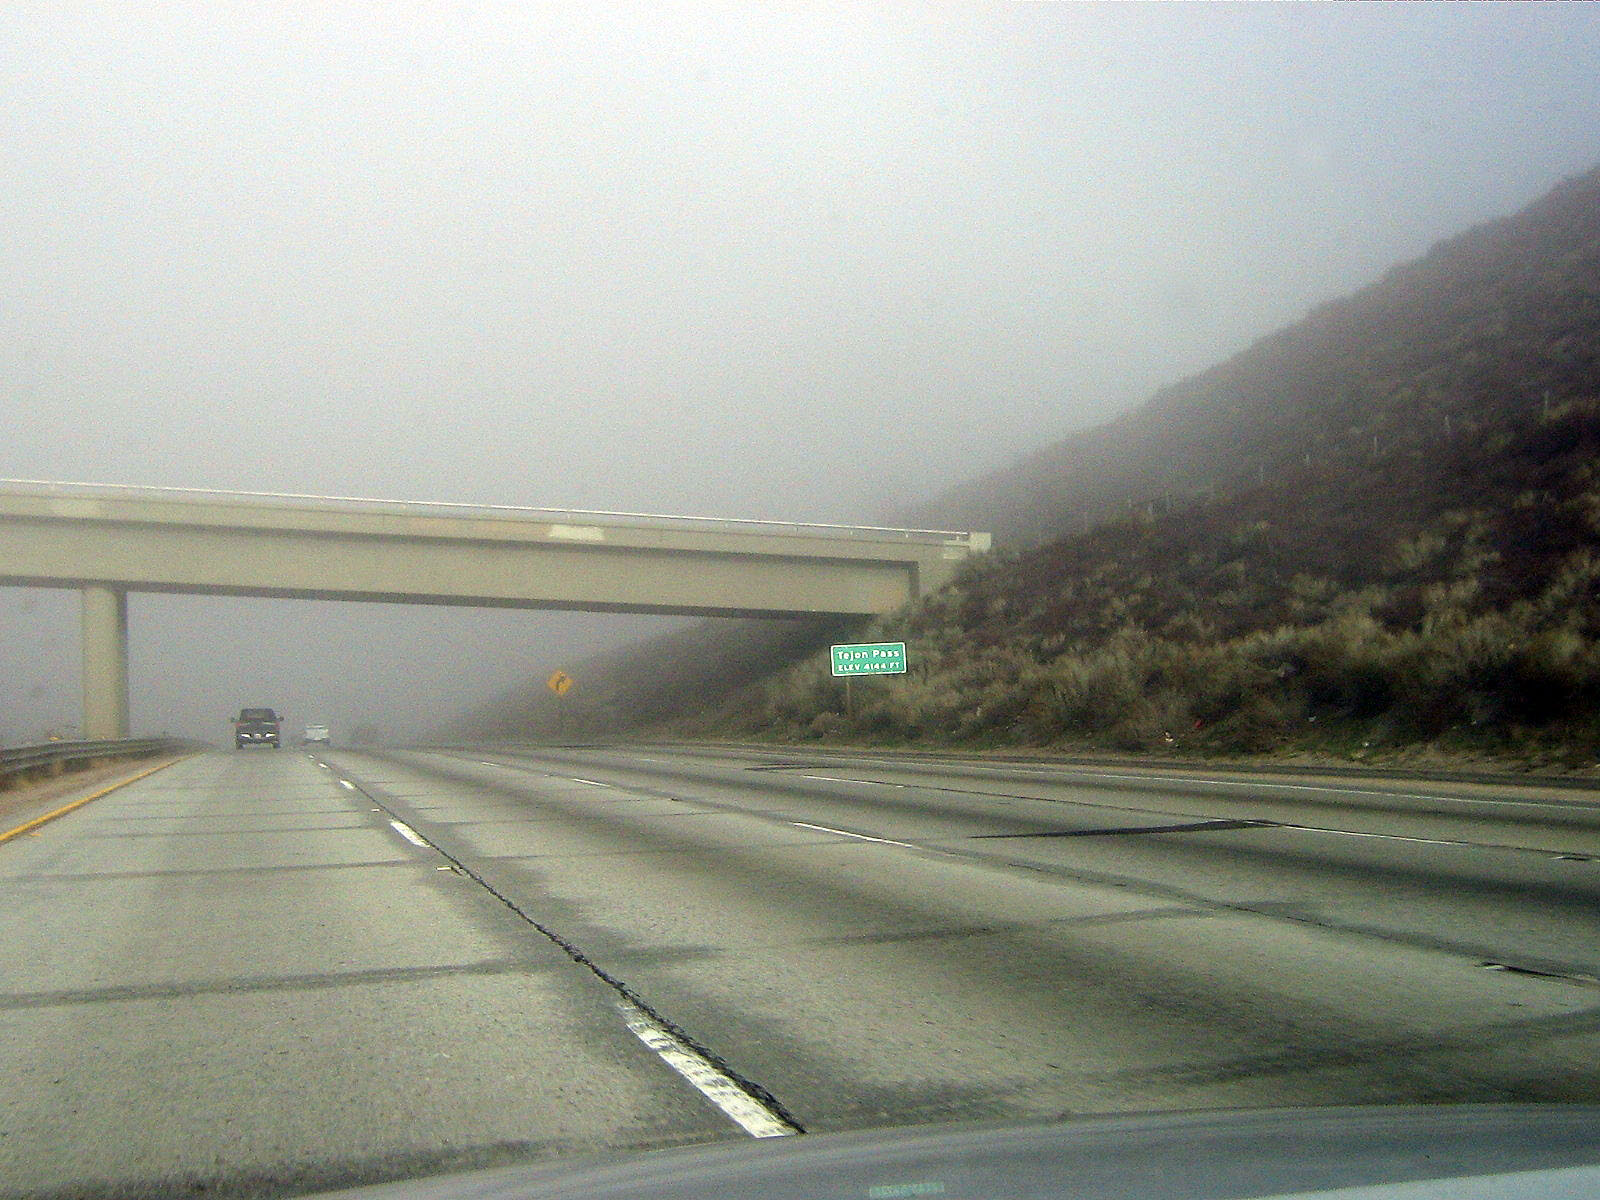 Driving Through Fog on Interstate 5 North (January 6, 2009)